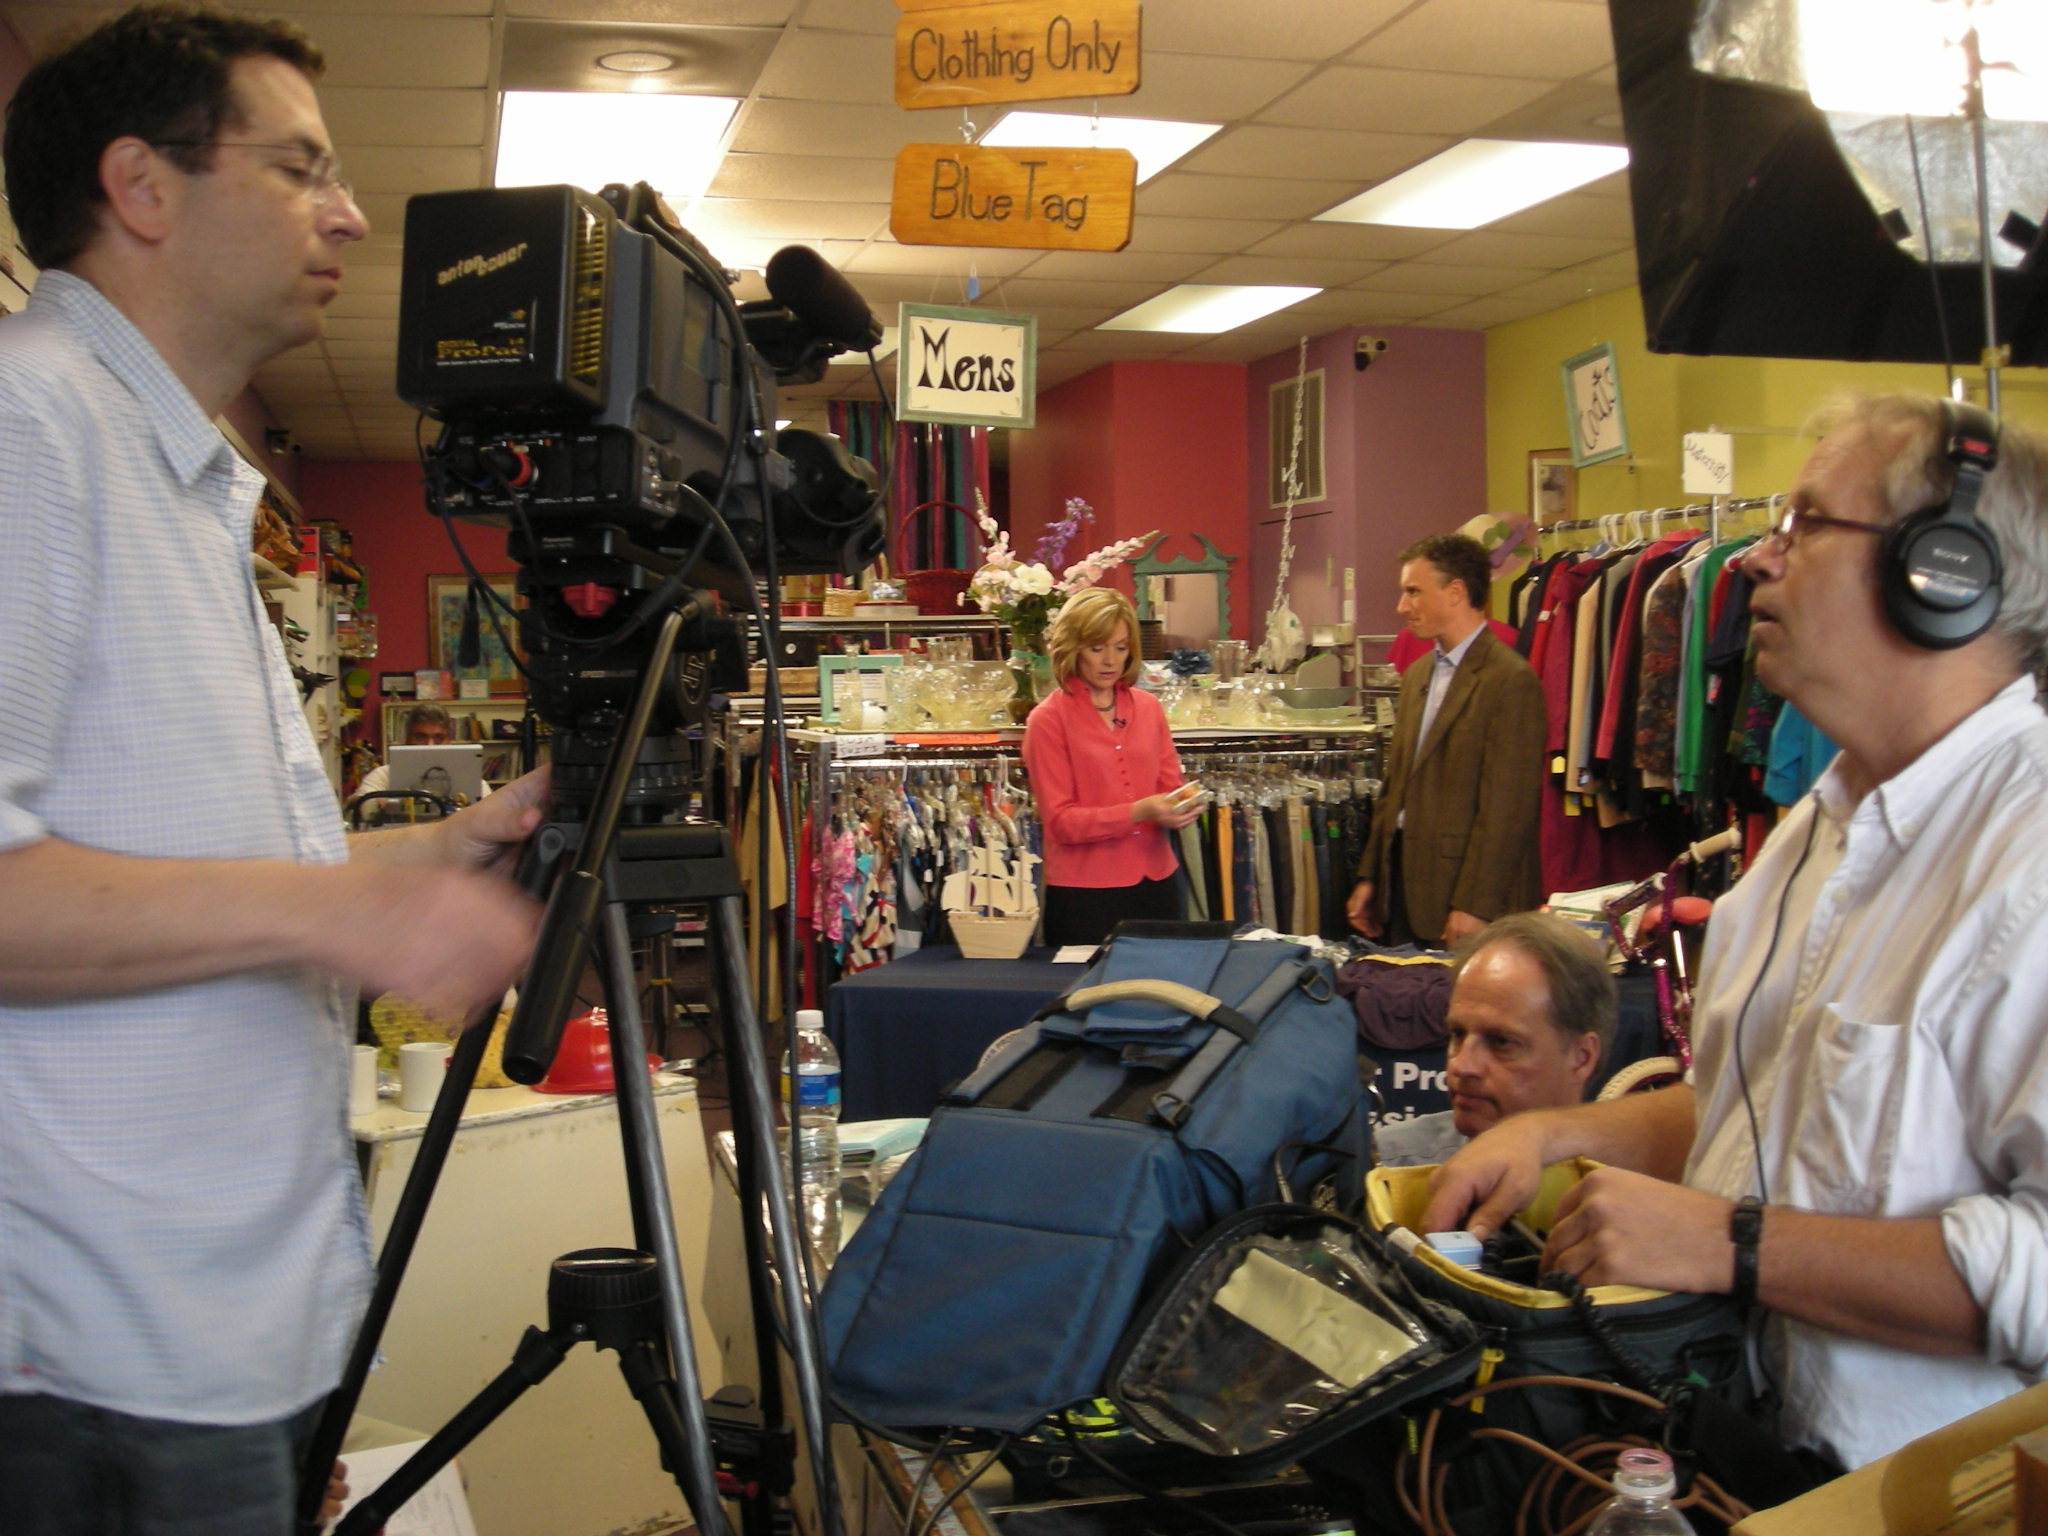 Consumer Products Safety Committee Films Training Video at the Pennyworth Shop